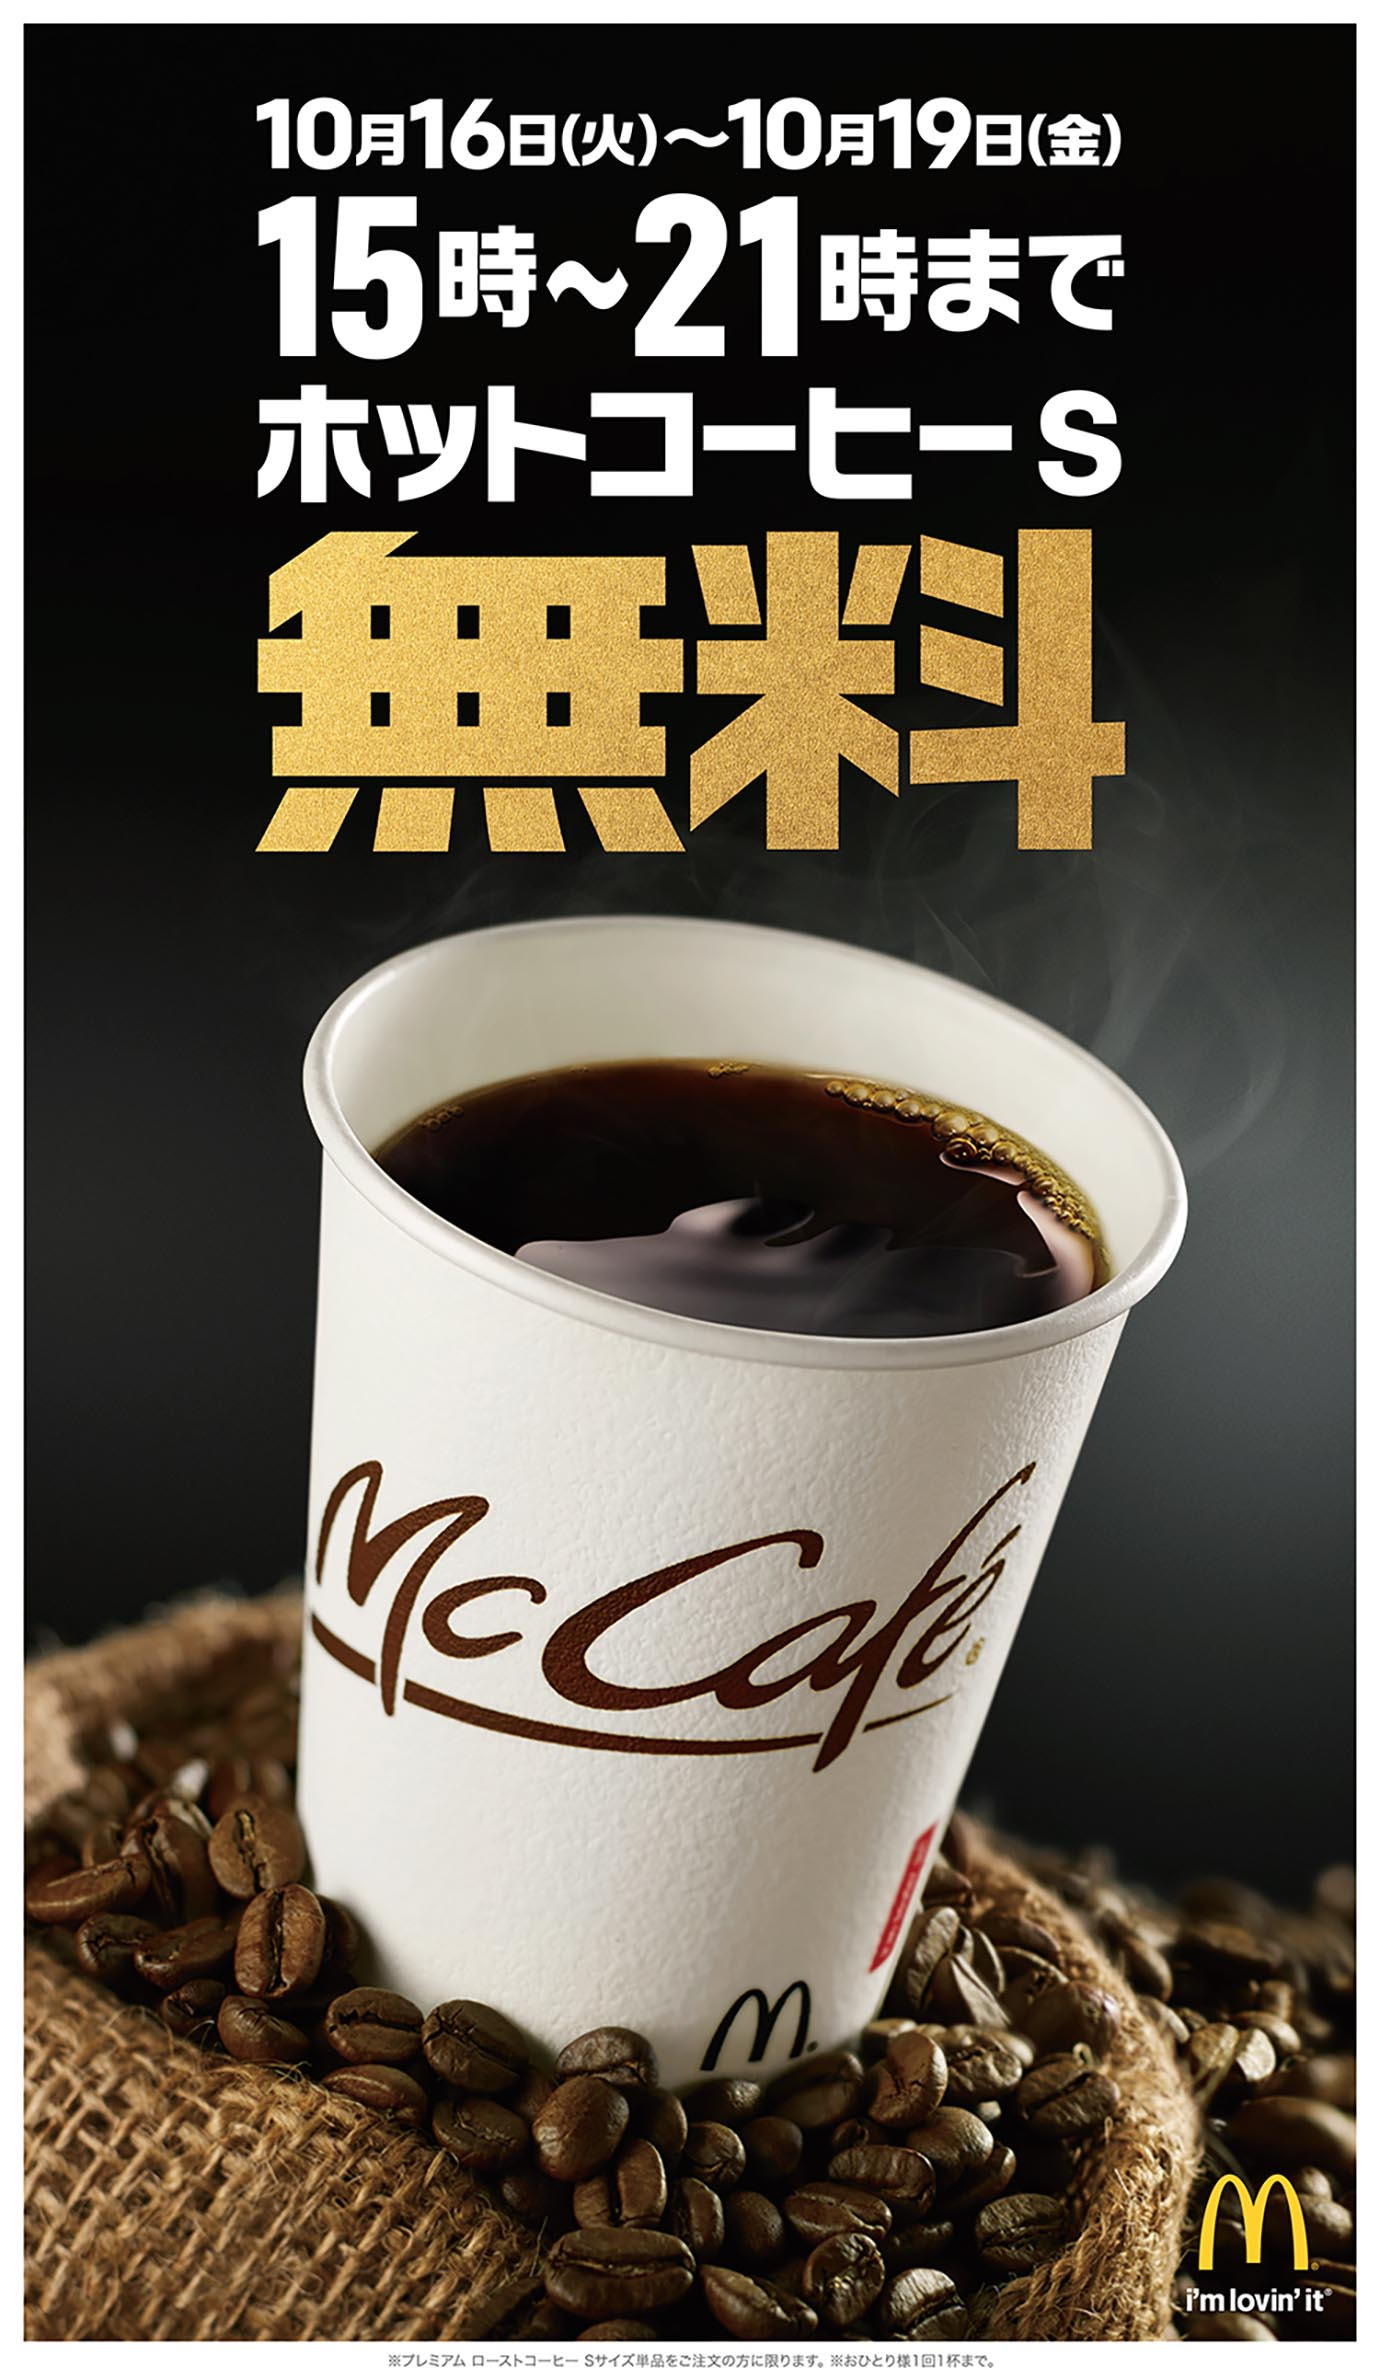 mcdonalds-coffee-is-free